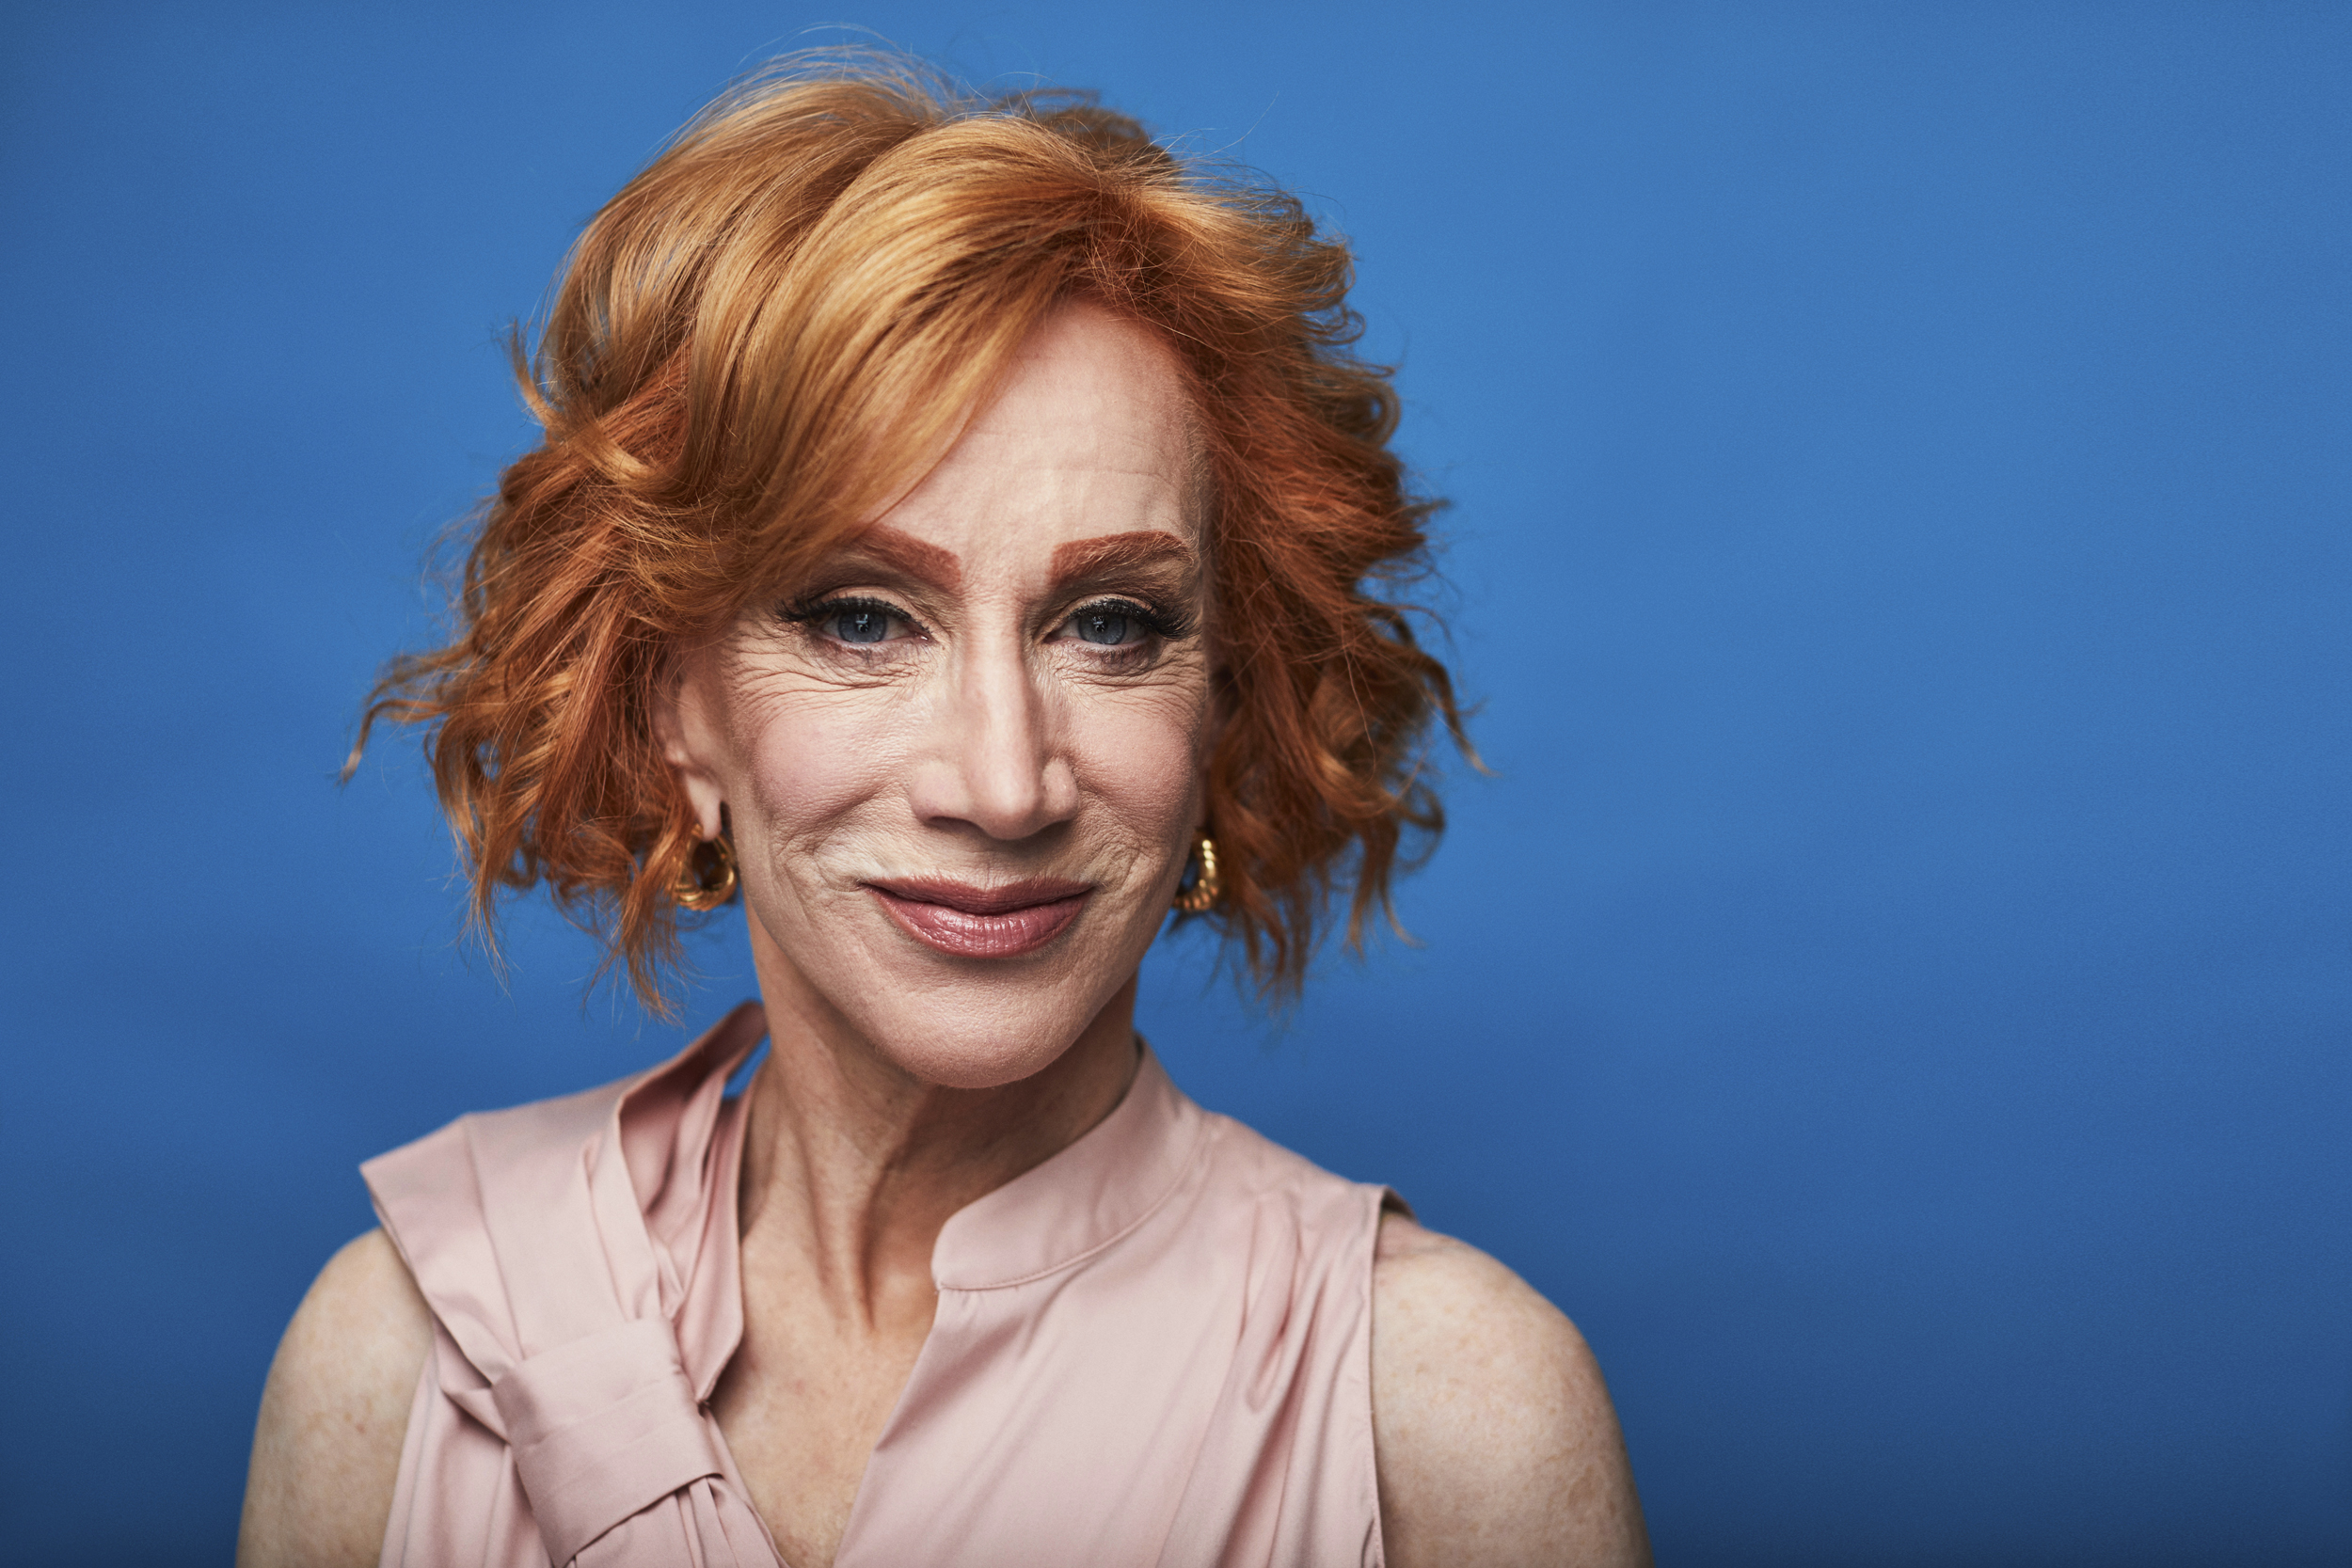 Kathy Griffin says she is undergoing surgery for lung cancer, but has never smoked